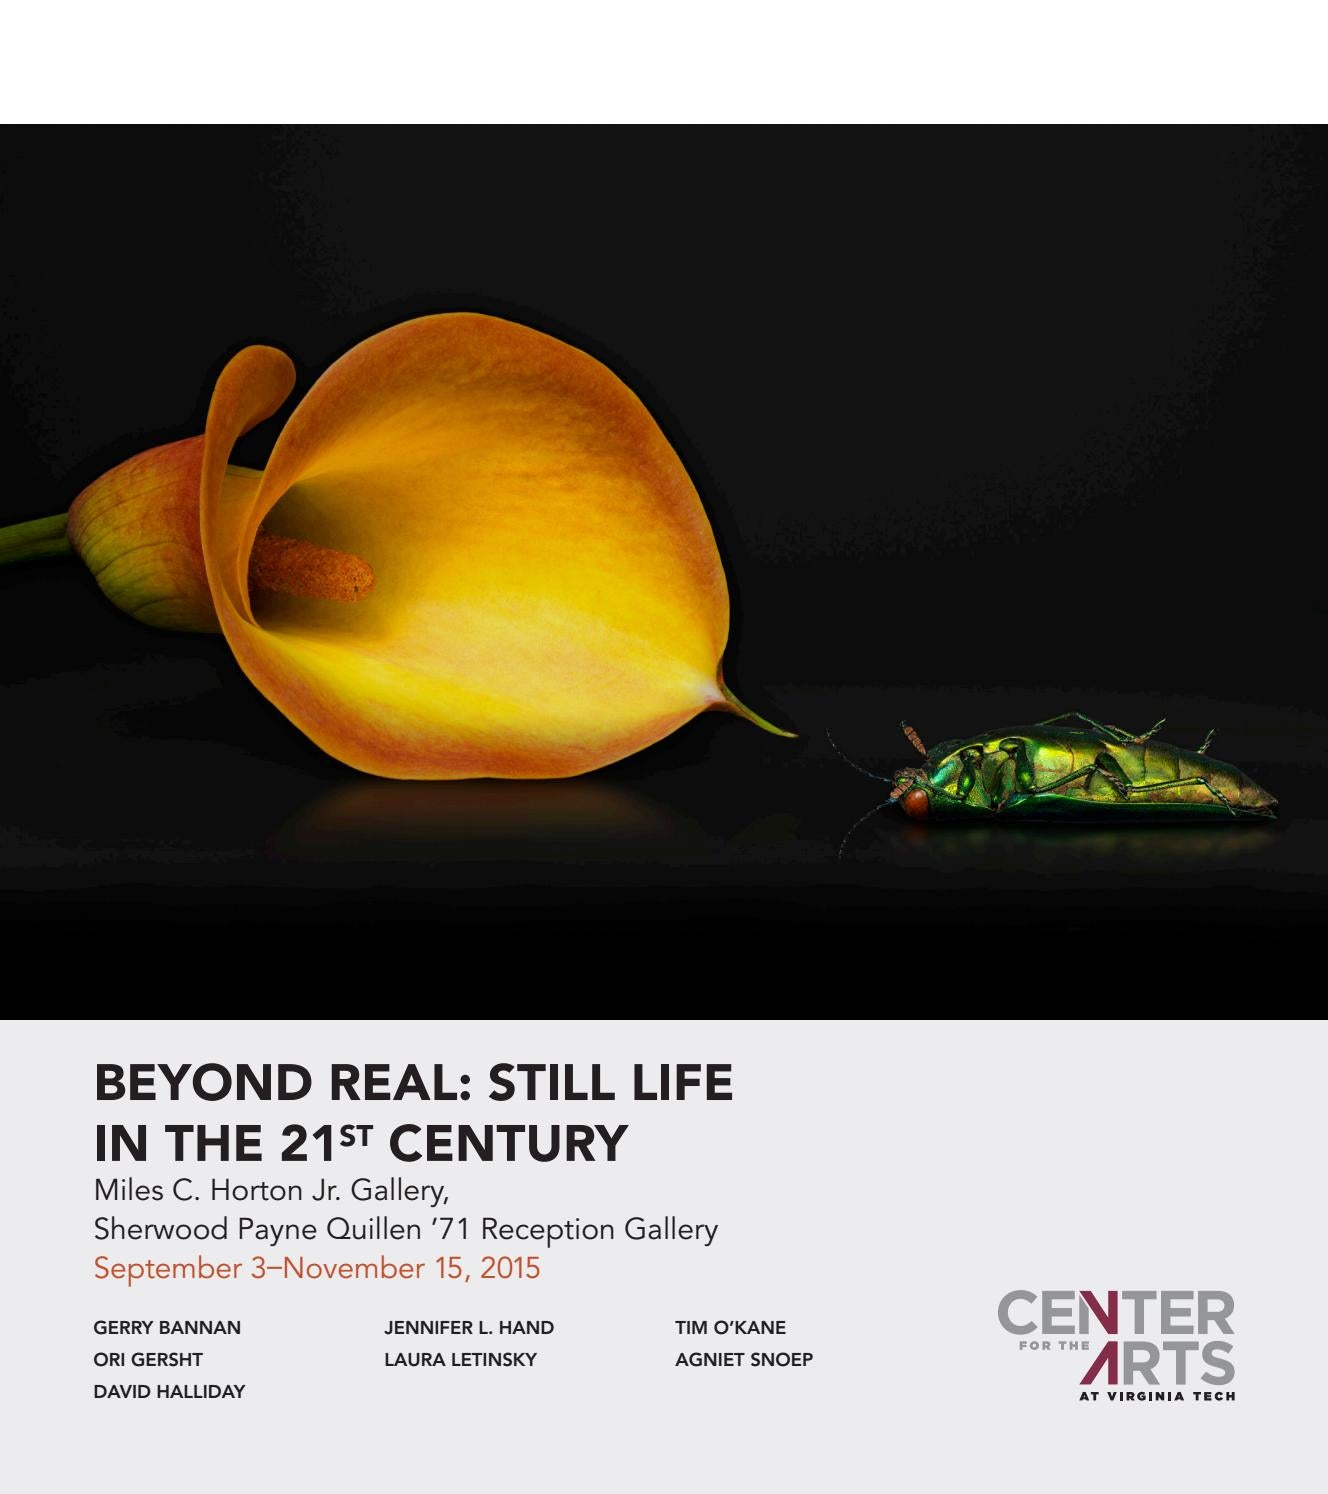 Beyond Real: Still Life in the 21st Century by Moss Arts